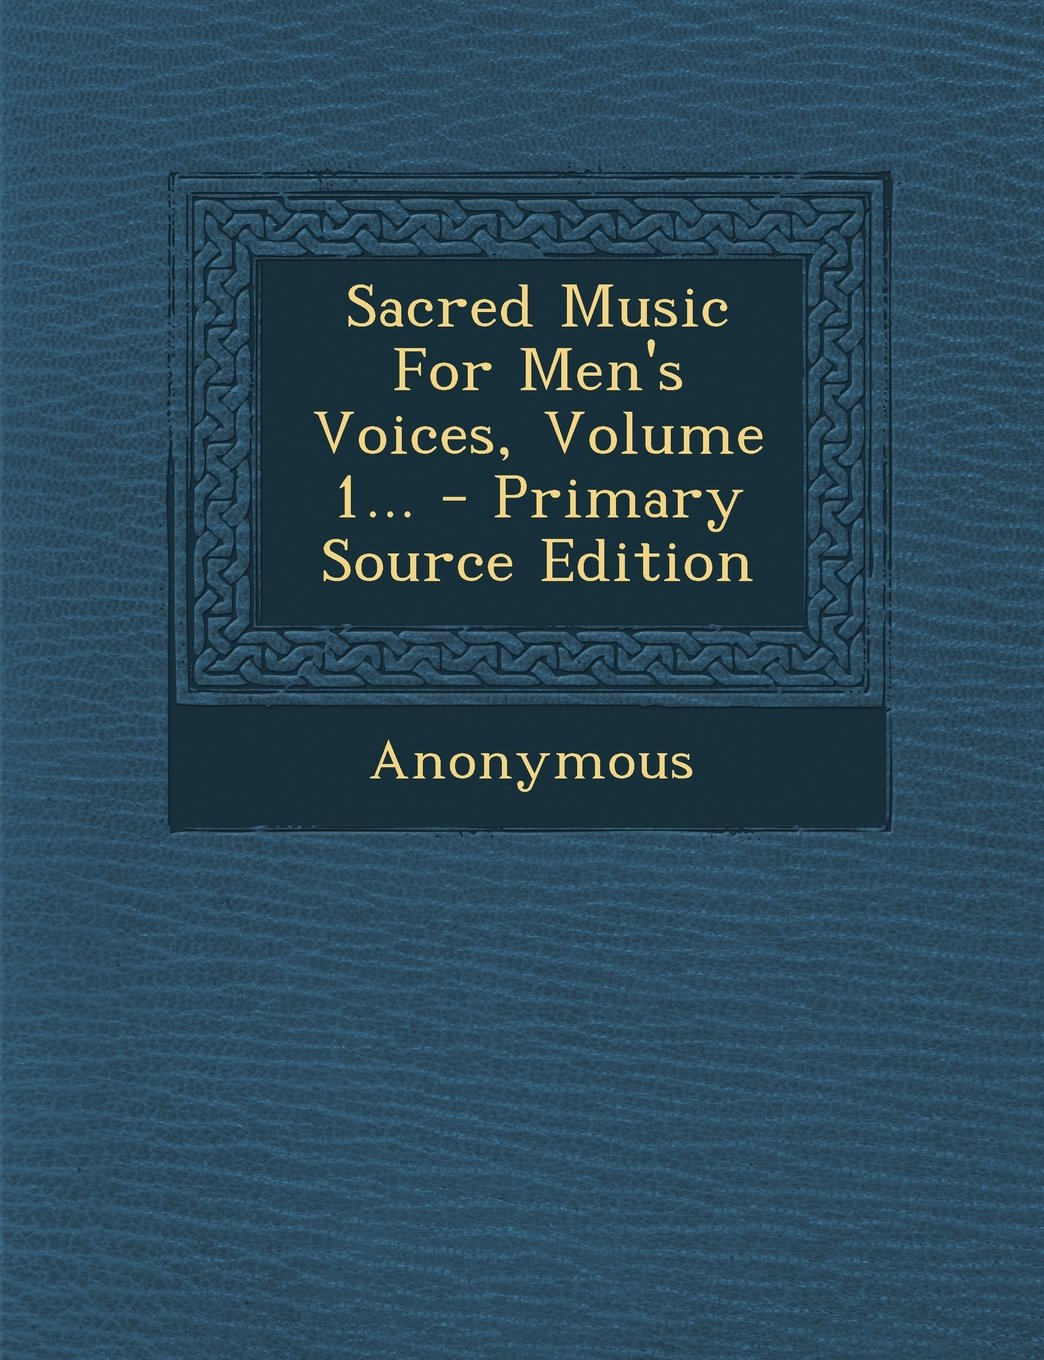 Download Sacred Music For Men's Voices, Volume 1... - Primary Source Edition PDF